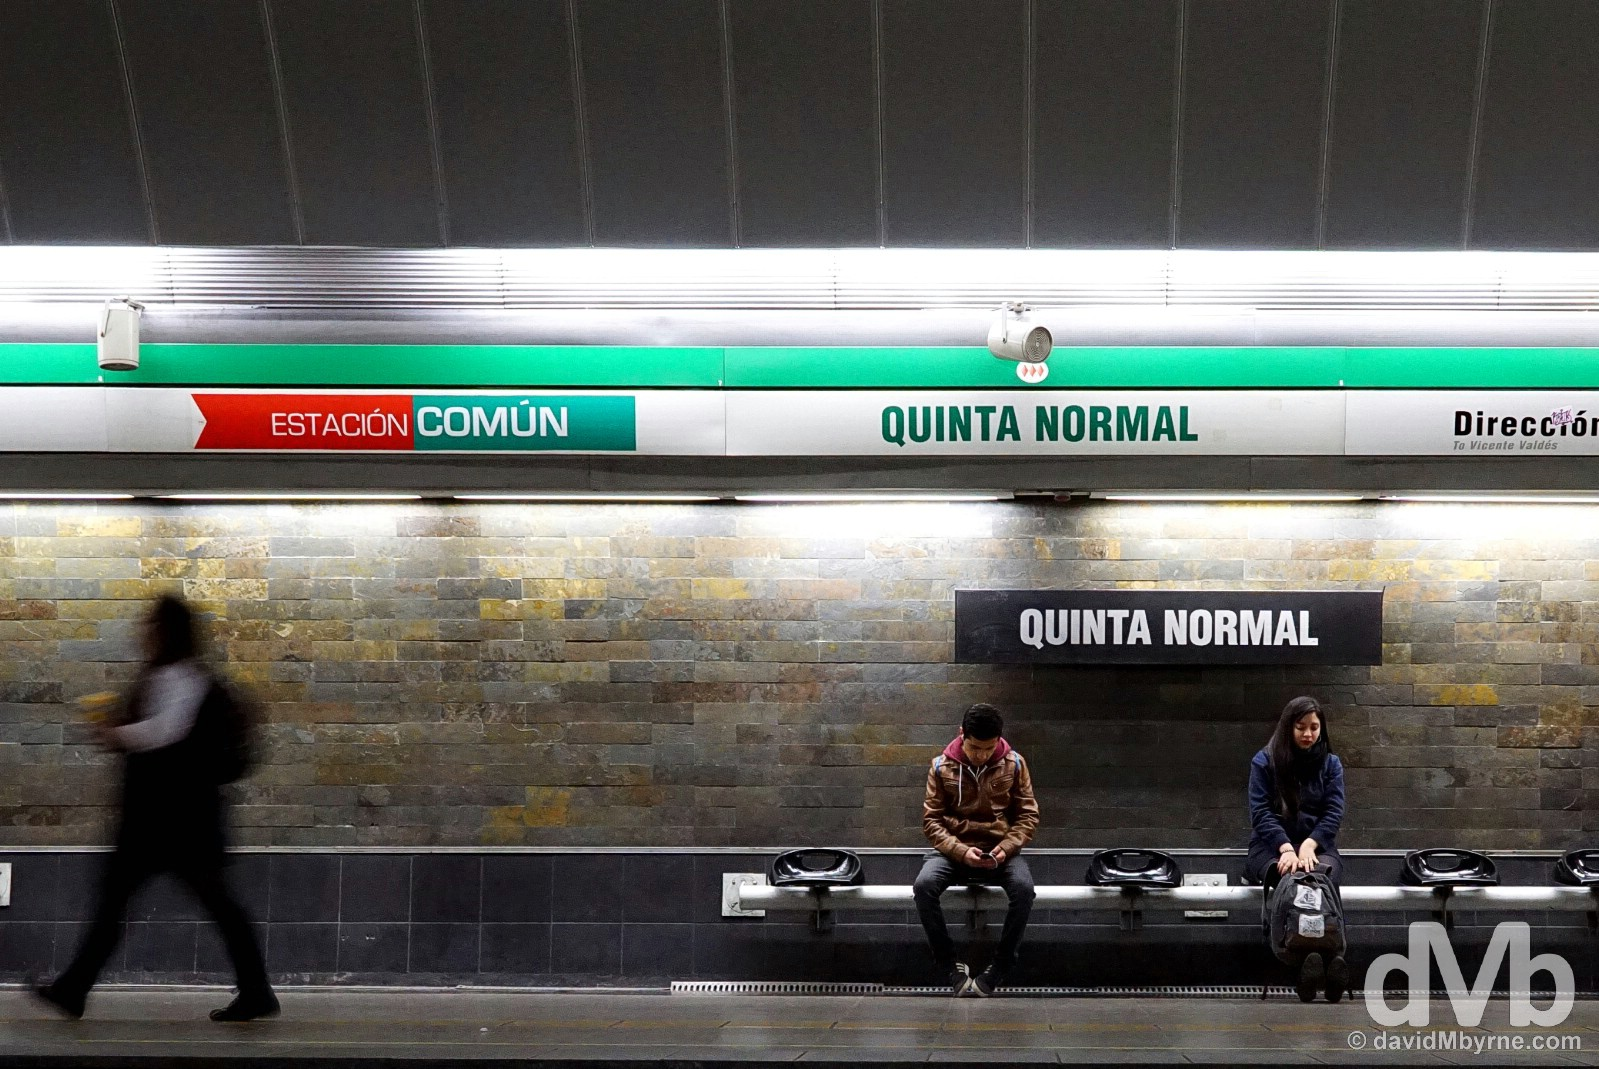 On the platform of Quinta Normal Metro station in Santiago, Chile. October 6, 2015.